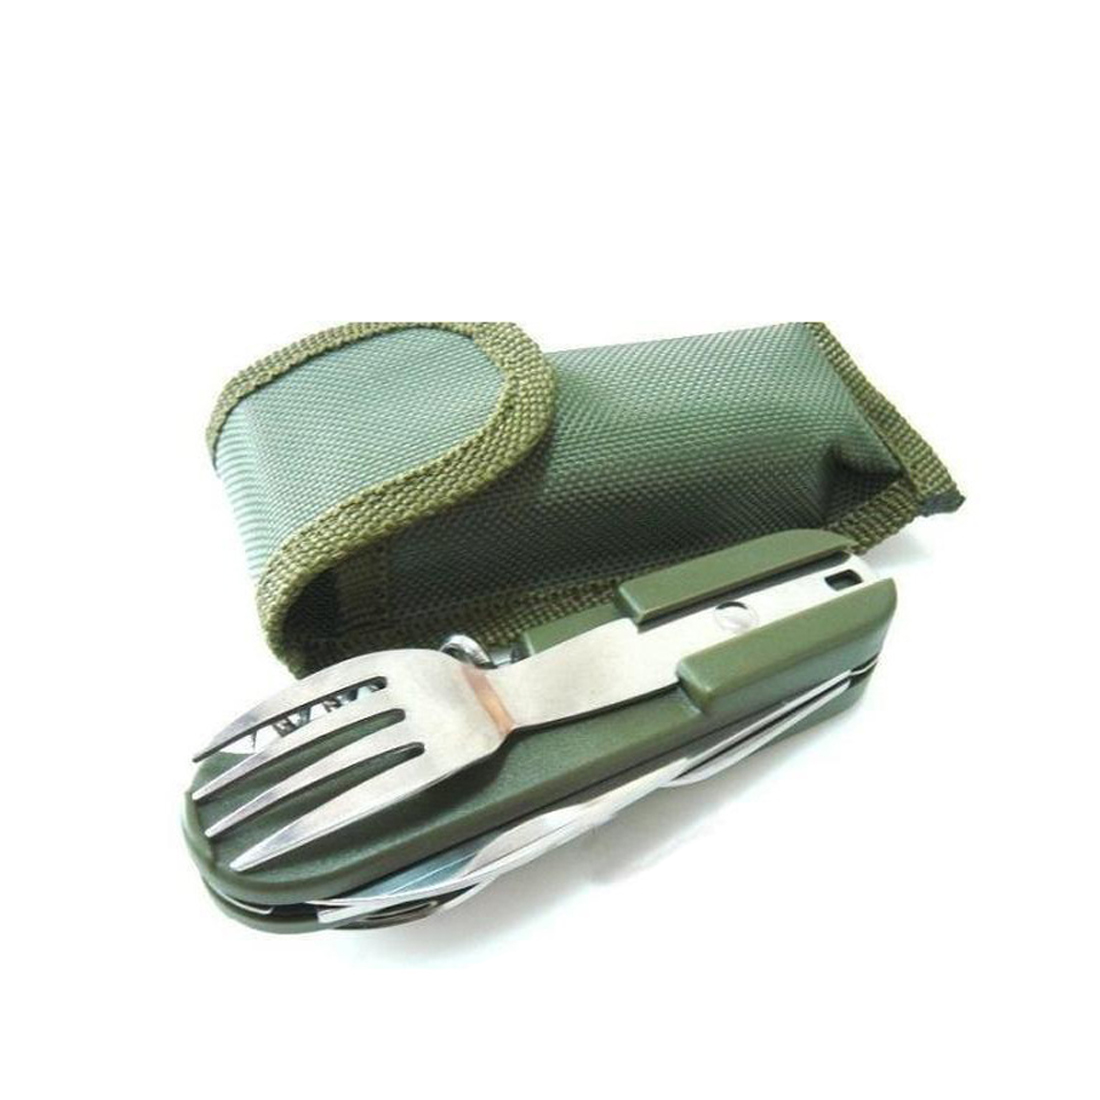 Kamp Malzemeleri Army Green Folding Portable Stainless Steel Camping Picnic Cutlery Knife Fork Spoon Bottle Opener